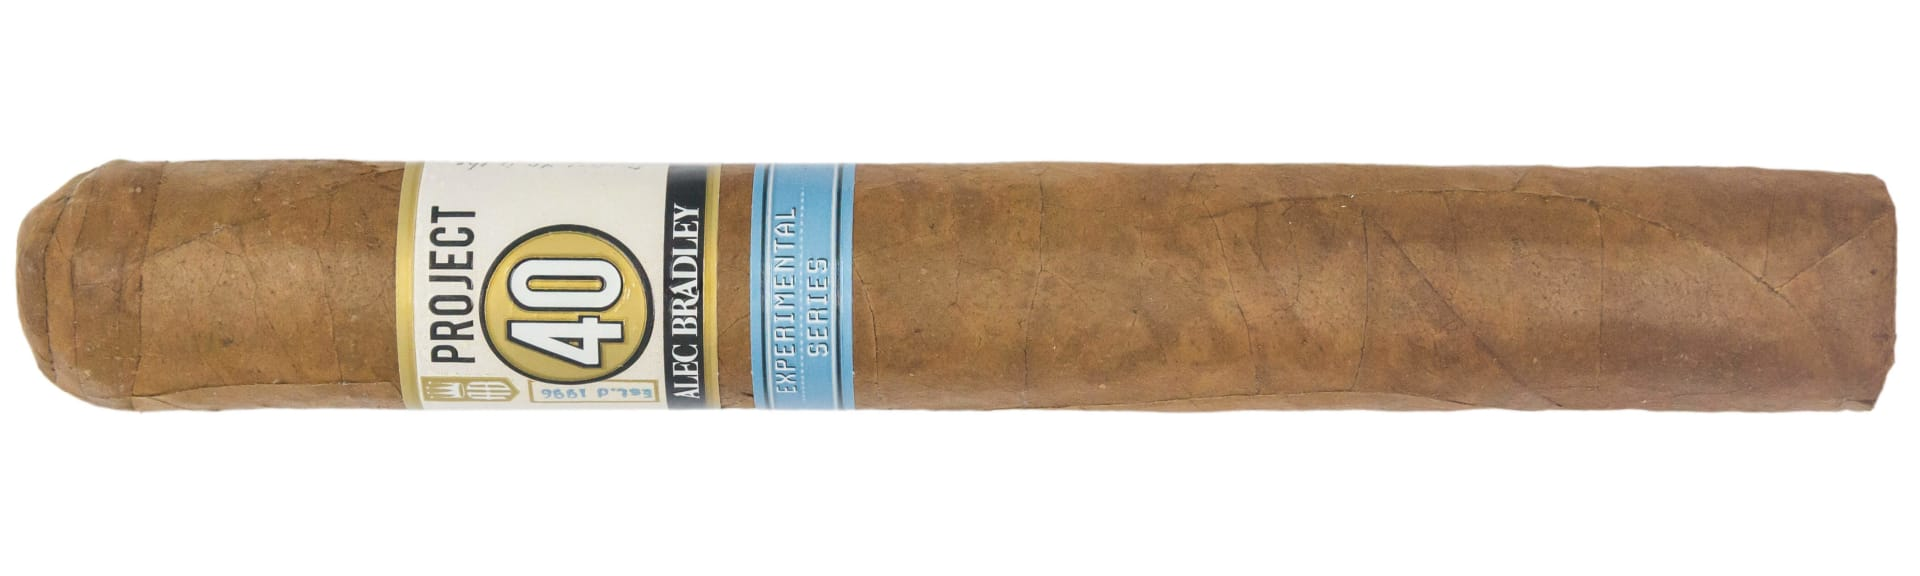 Blind Cigar Review: Alec Bradley | Project 40 06.52 Featured Image